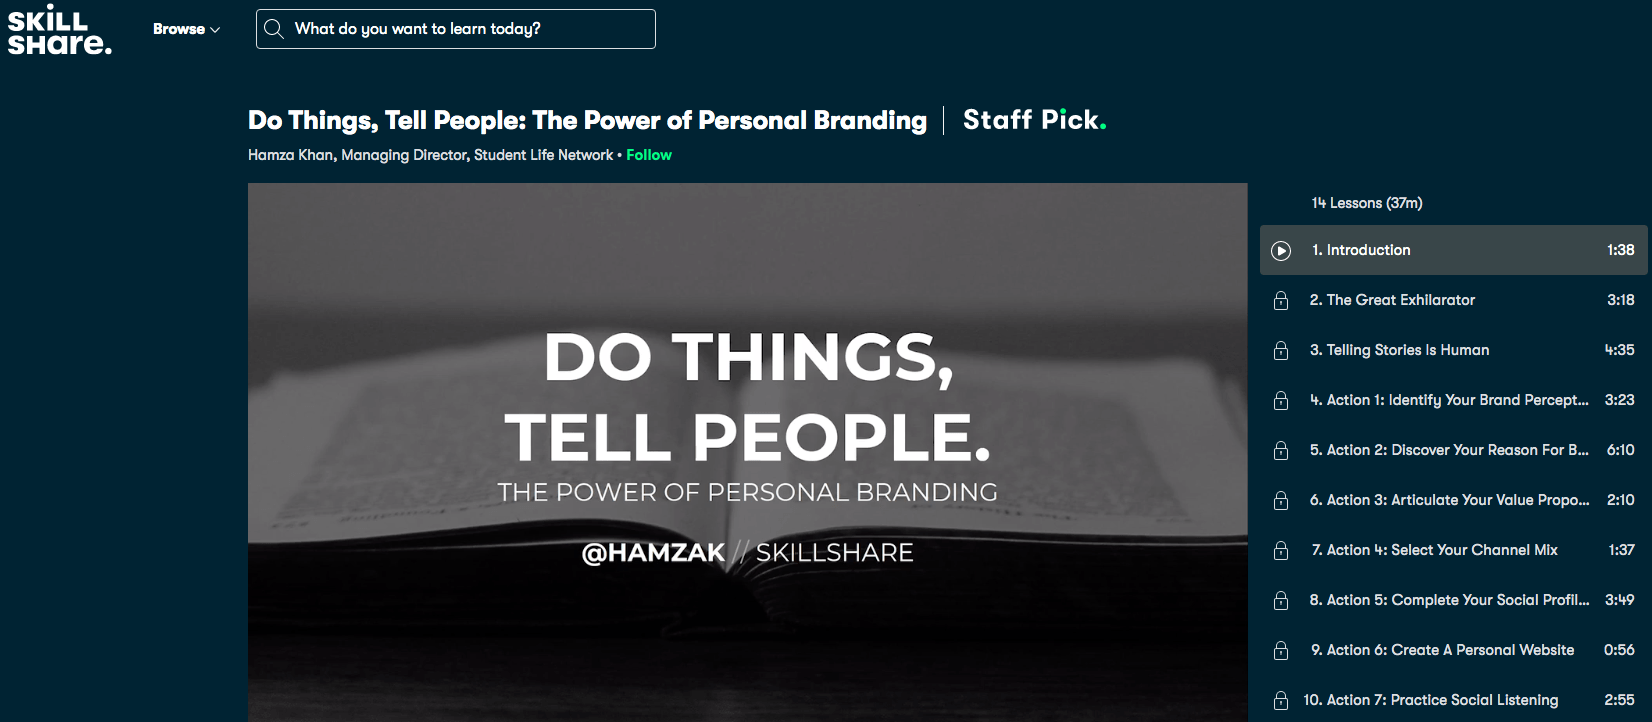 Do Things, Tell People- The Power of Personal Branding